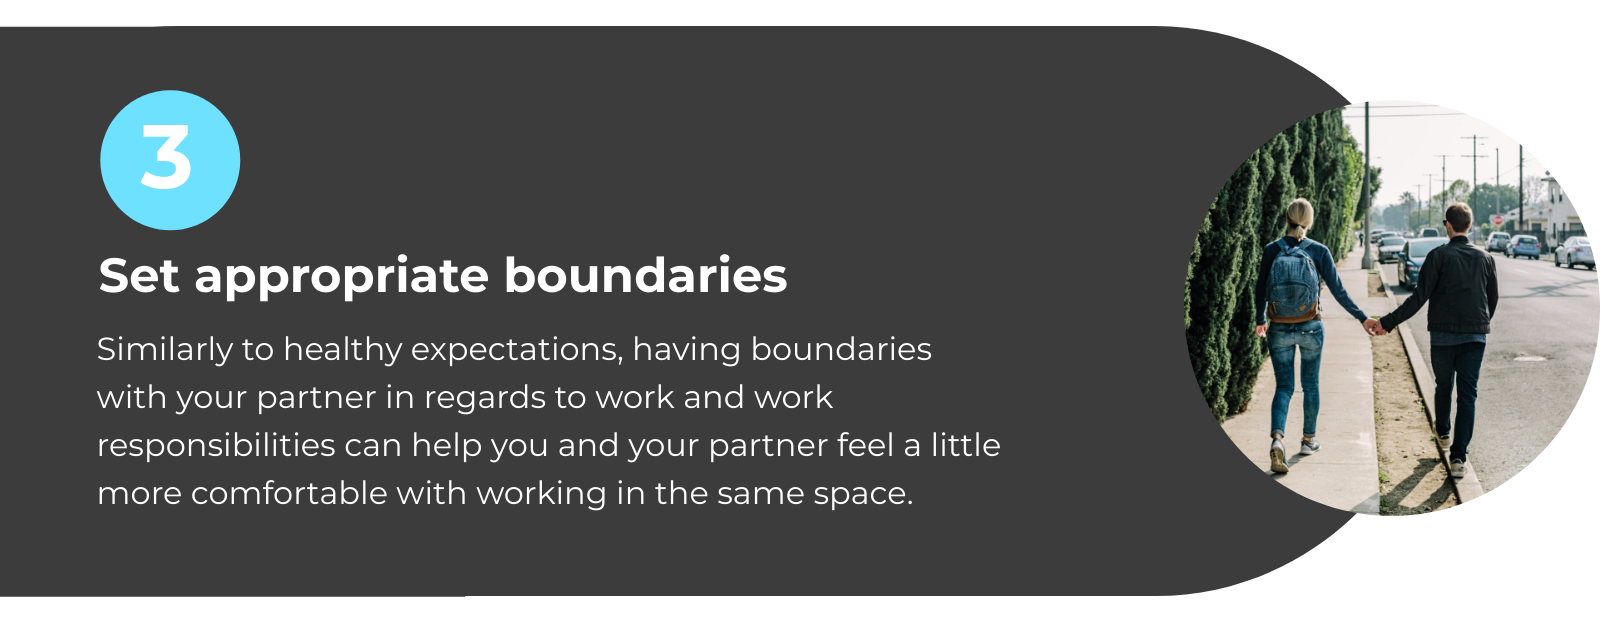 WFH with Partner Tip 3: Set Appropriate Boundaries